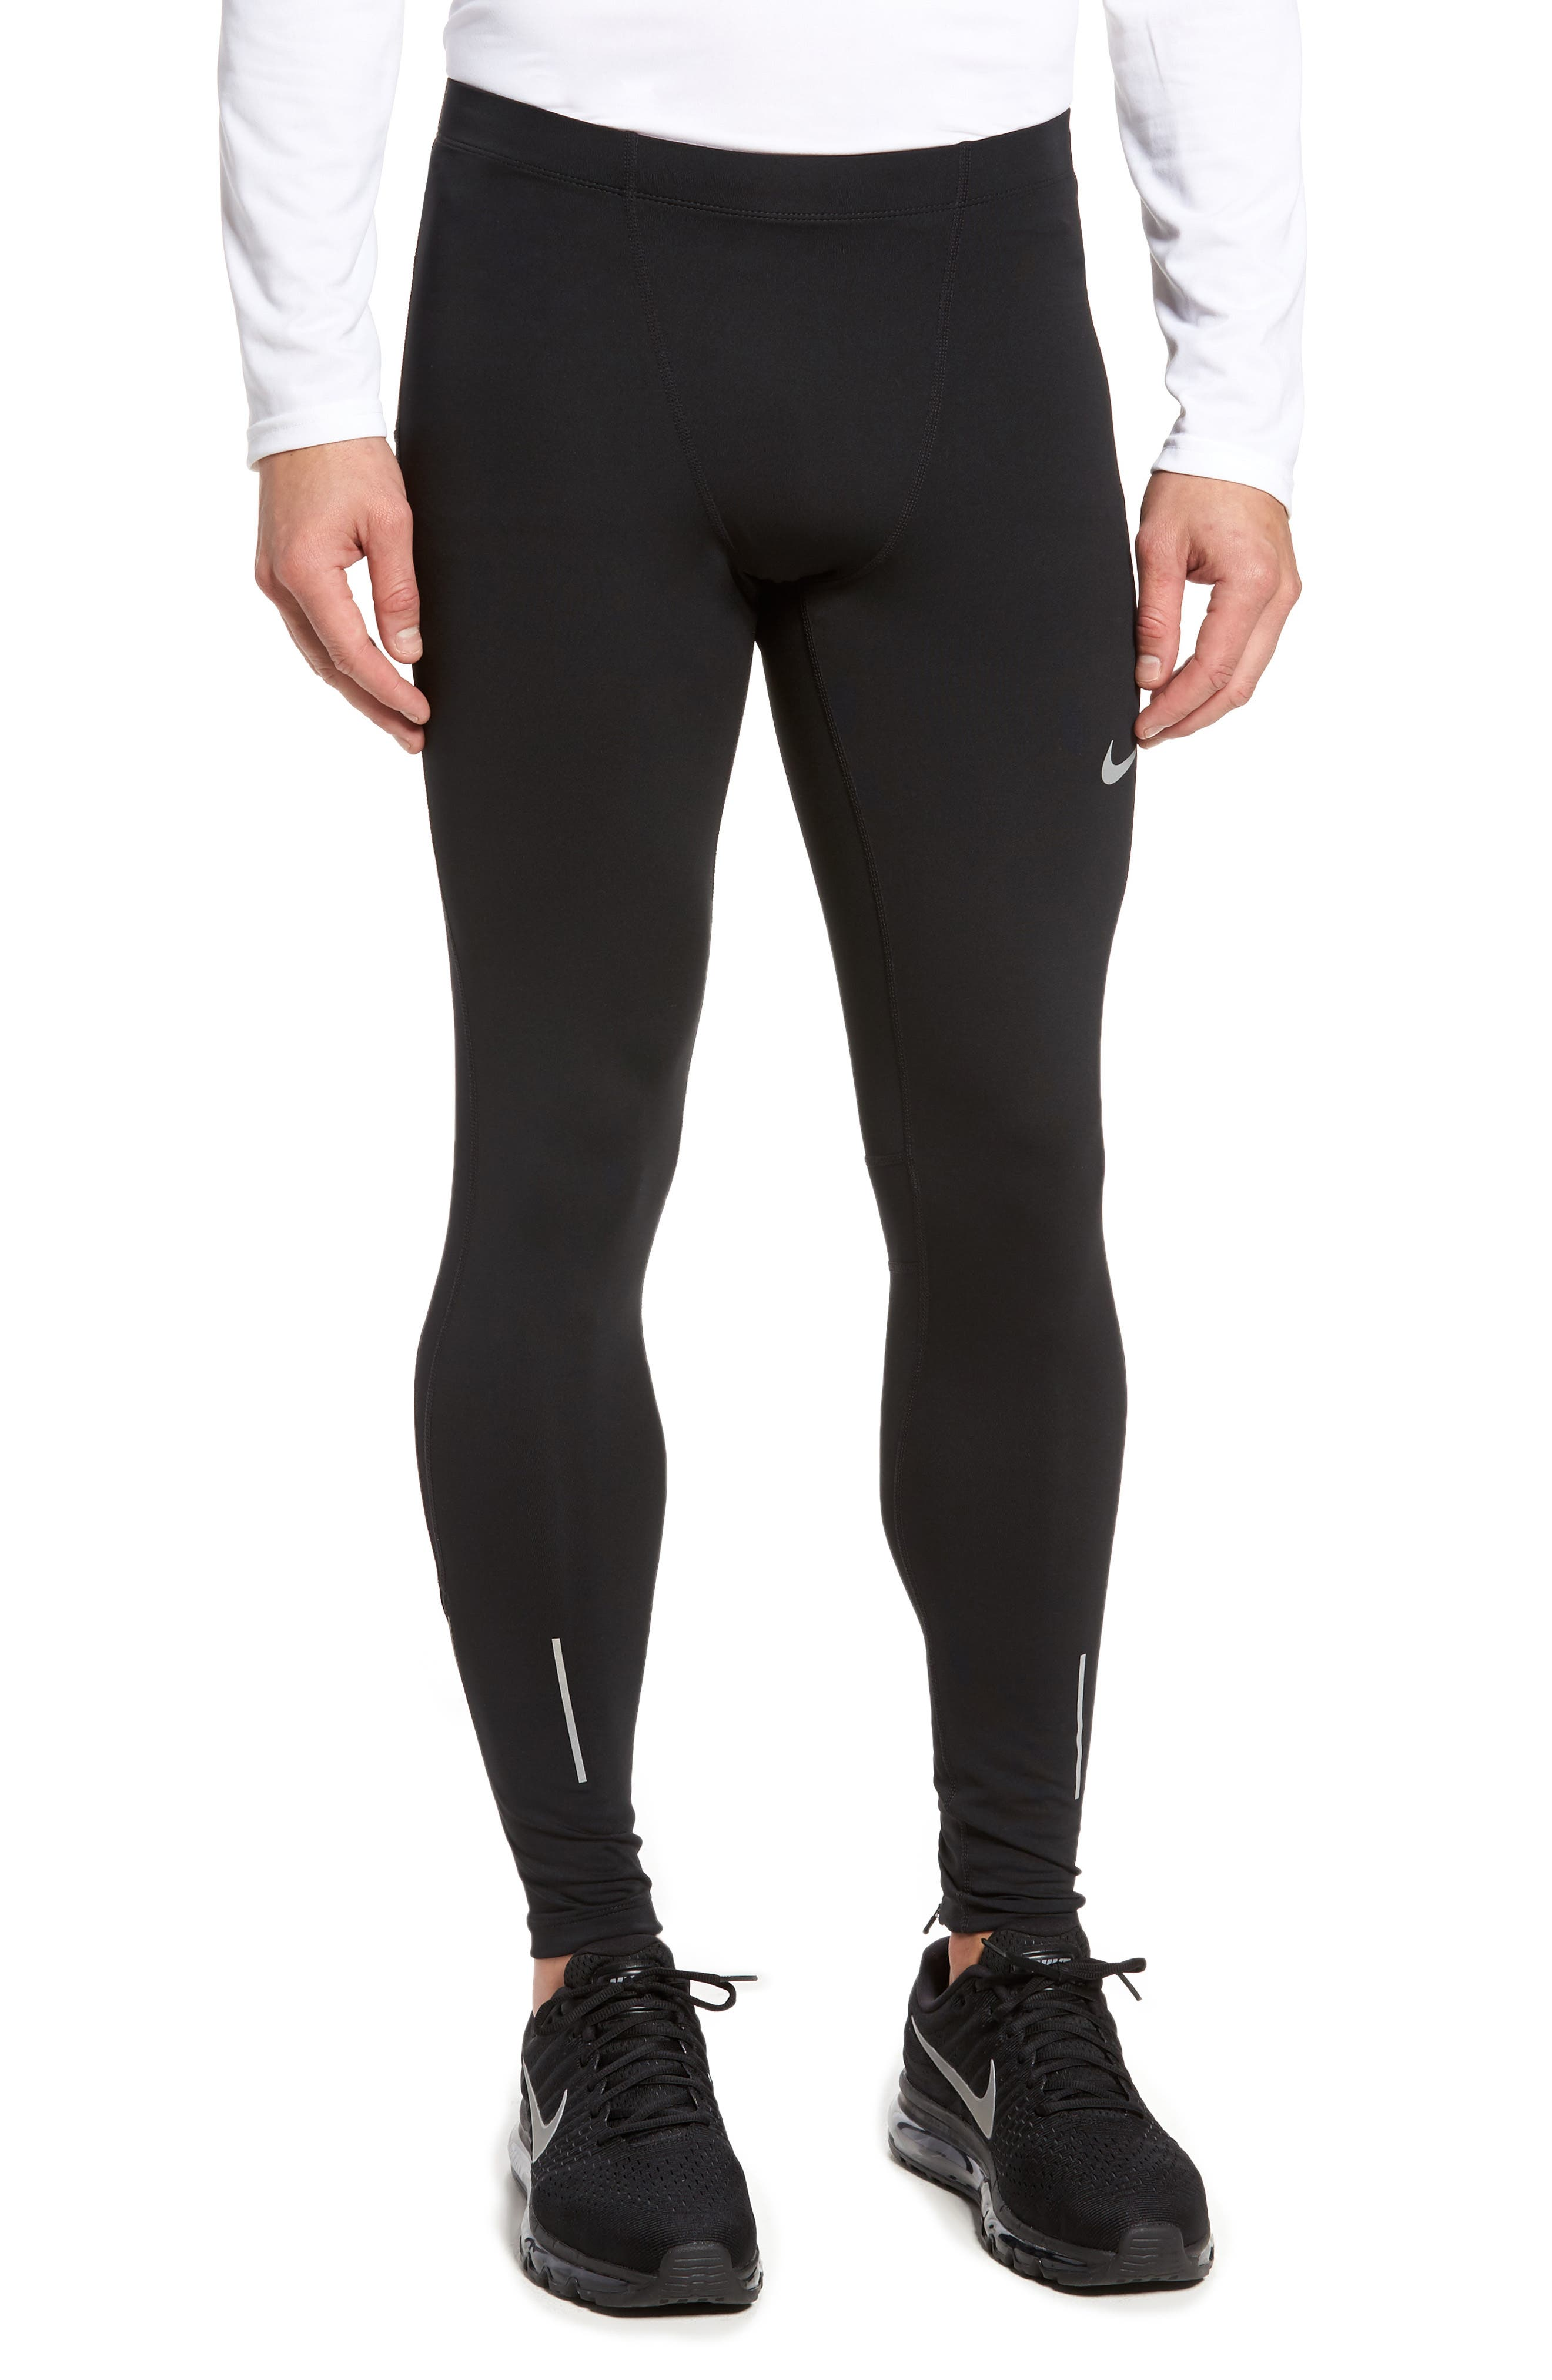 Alternate Image 1 Selected - Nike Therma Dry Running Tights